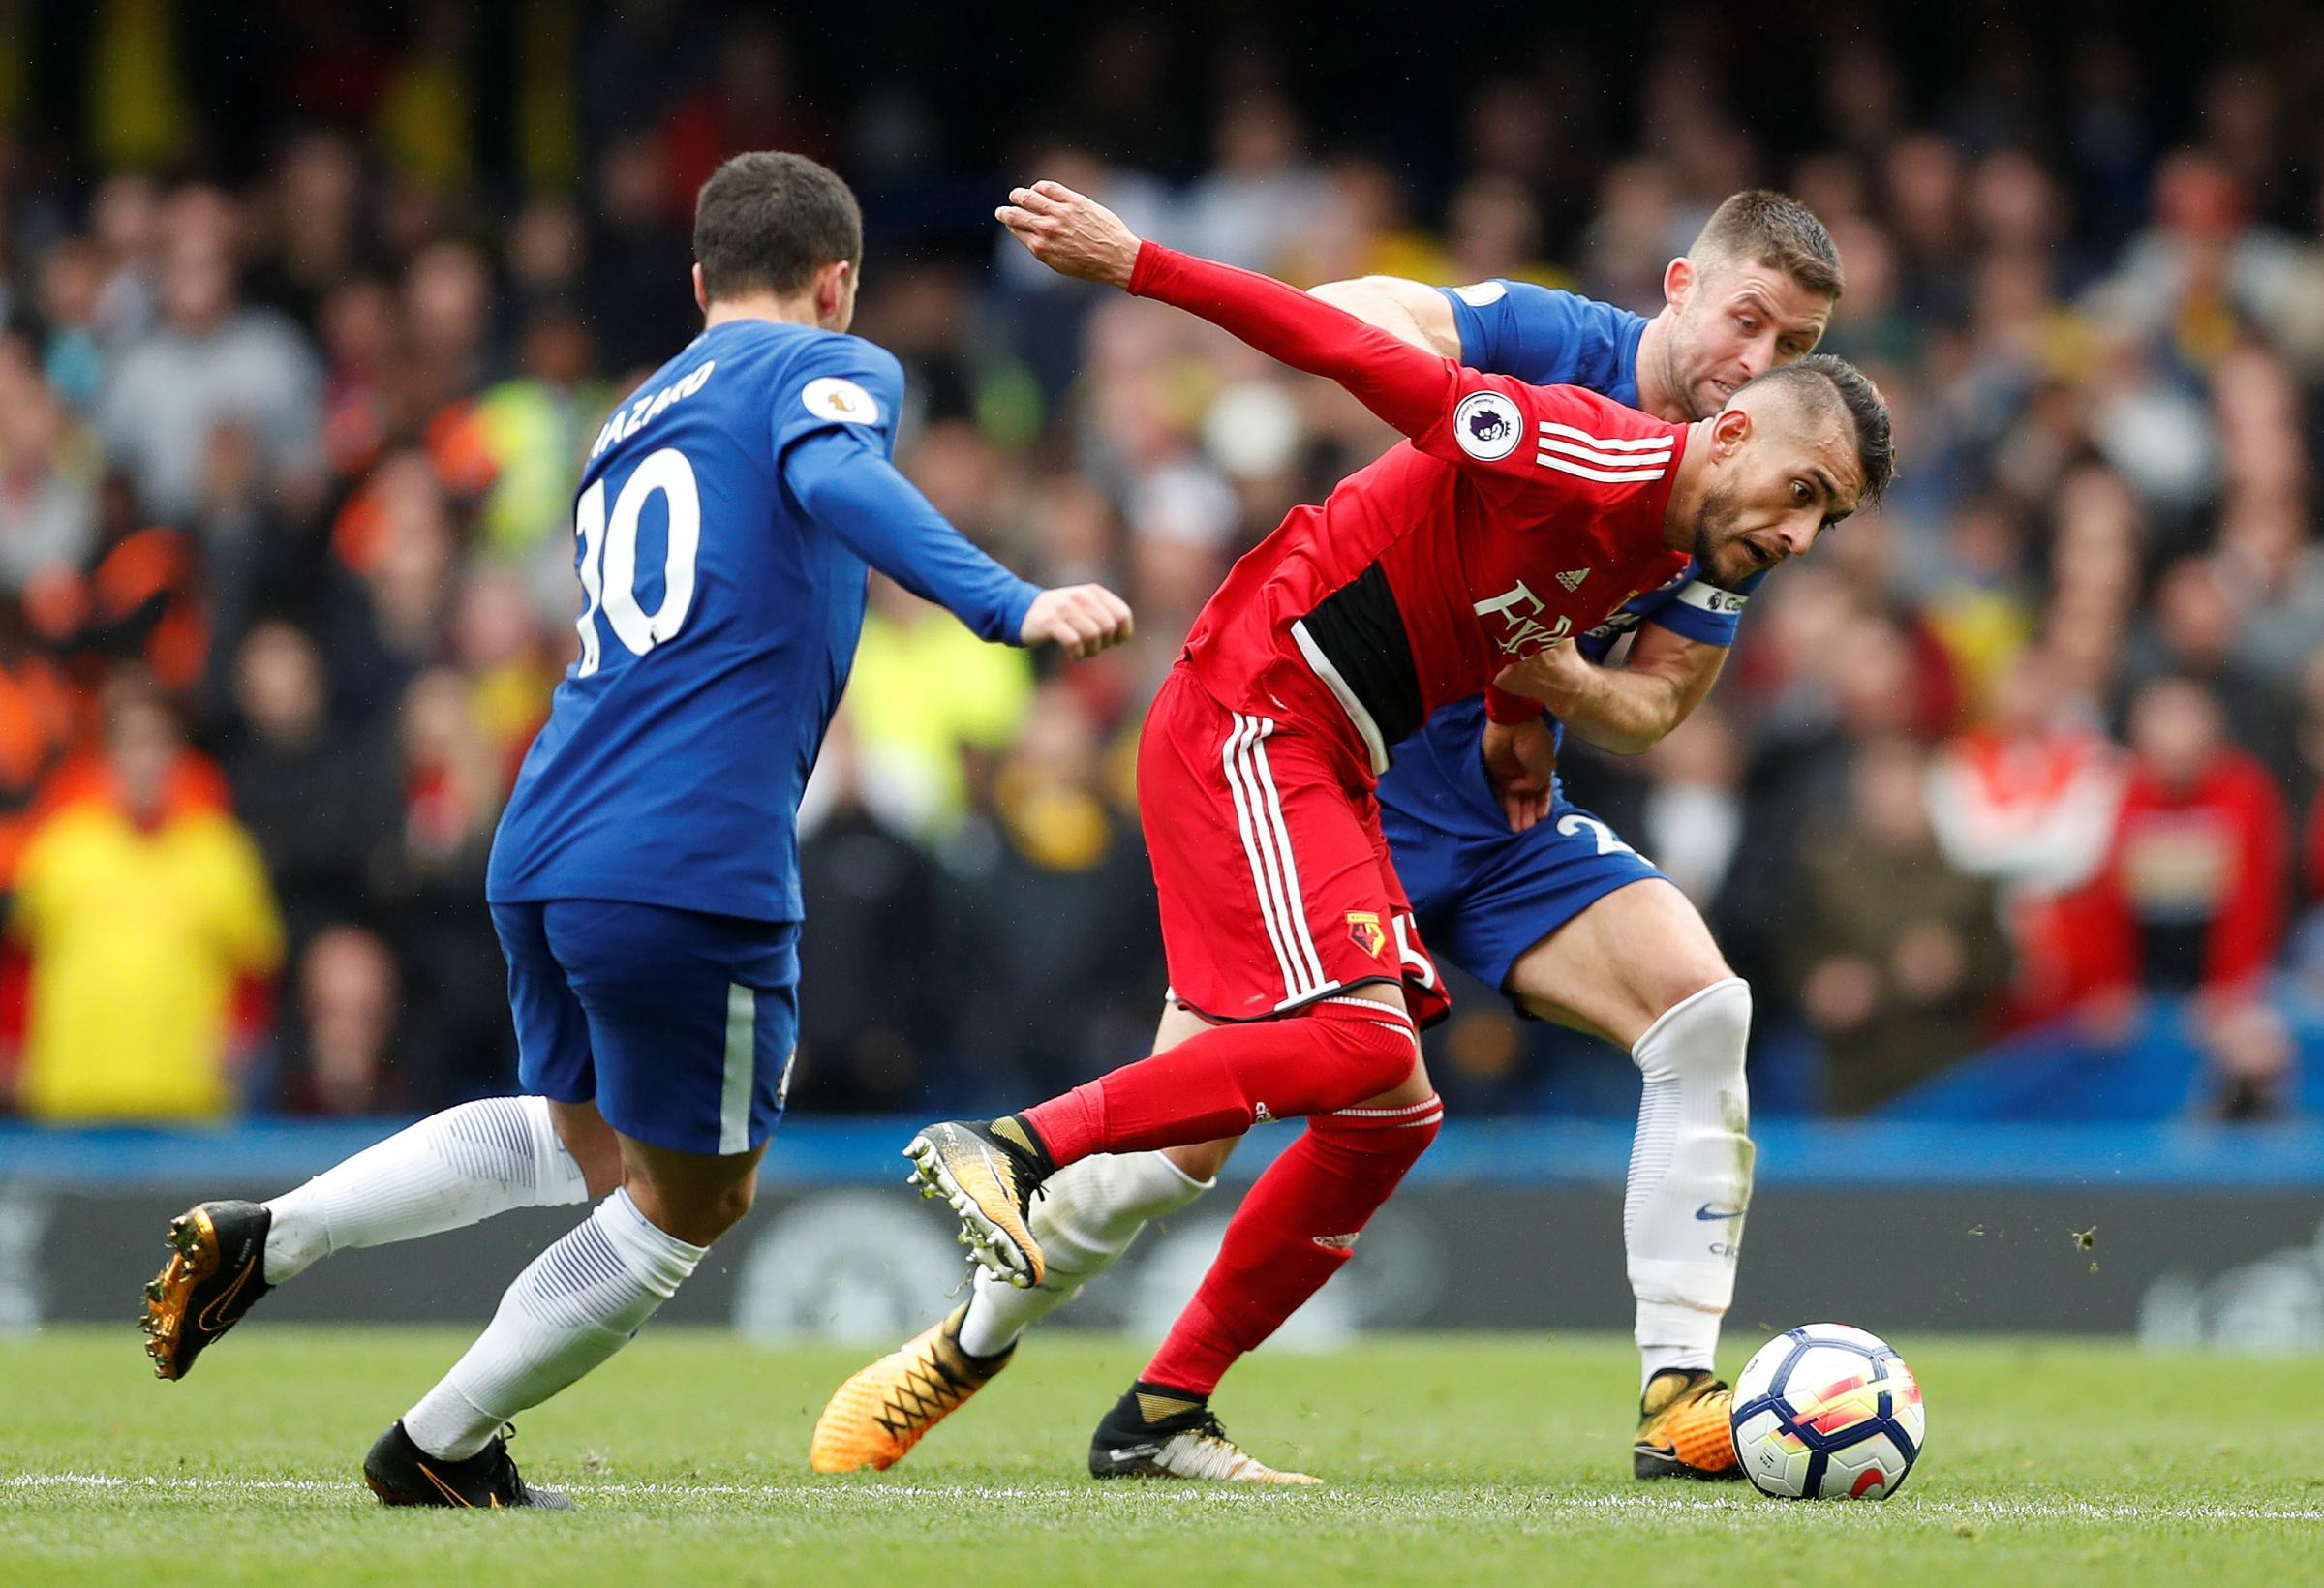 Roberto Pereyra went off injured after scoring at Chelsea a fortnight ago. Picture: Action Images